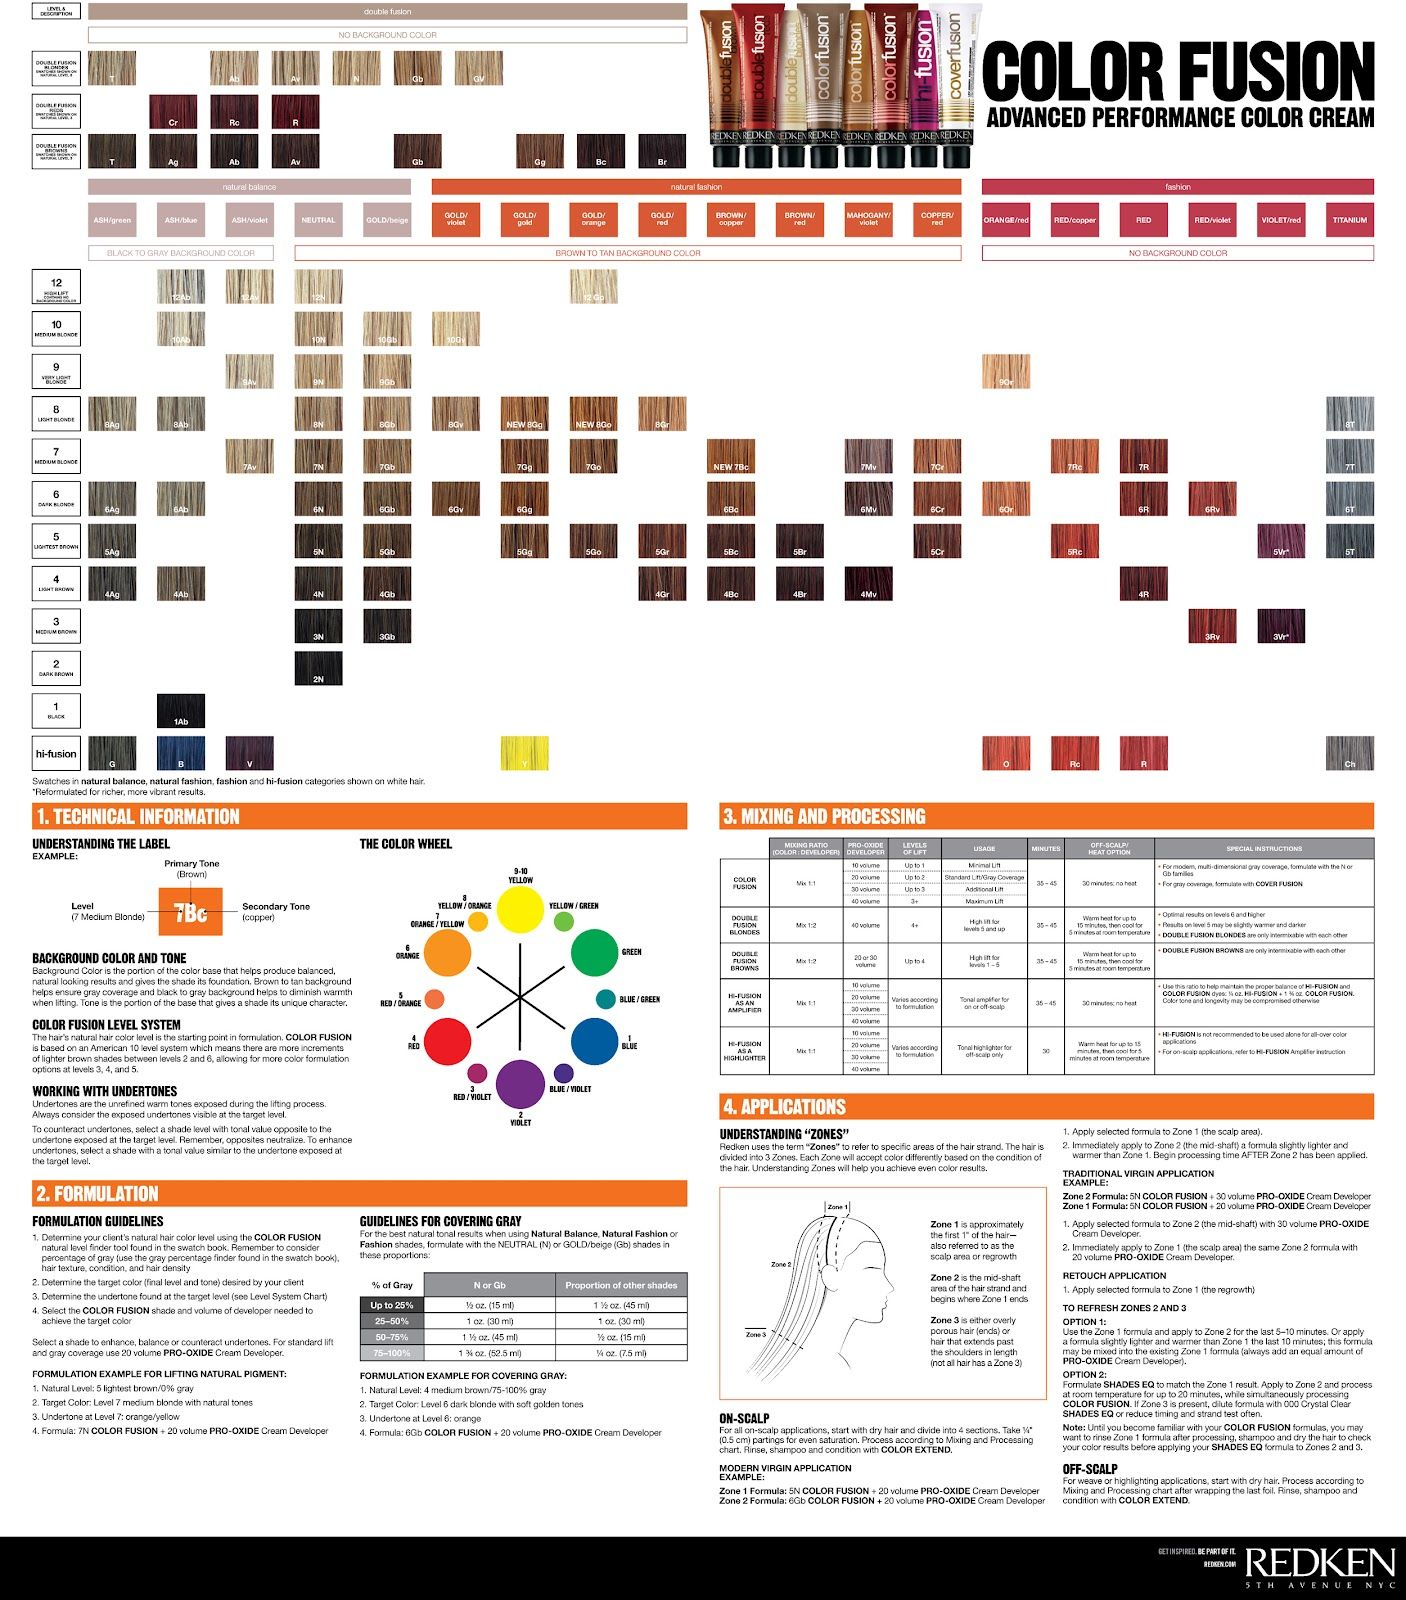 Redken chromatics color chart i want to try 1 ab ashblue hair redken chromatics color chart i want to try 1 ab ashblue hair pinterest colour chart chart and hair coloring nvjuhfo Images